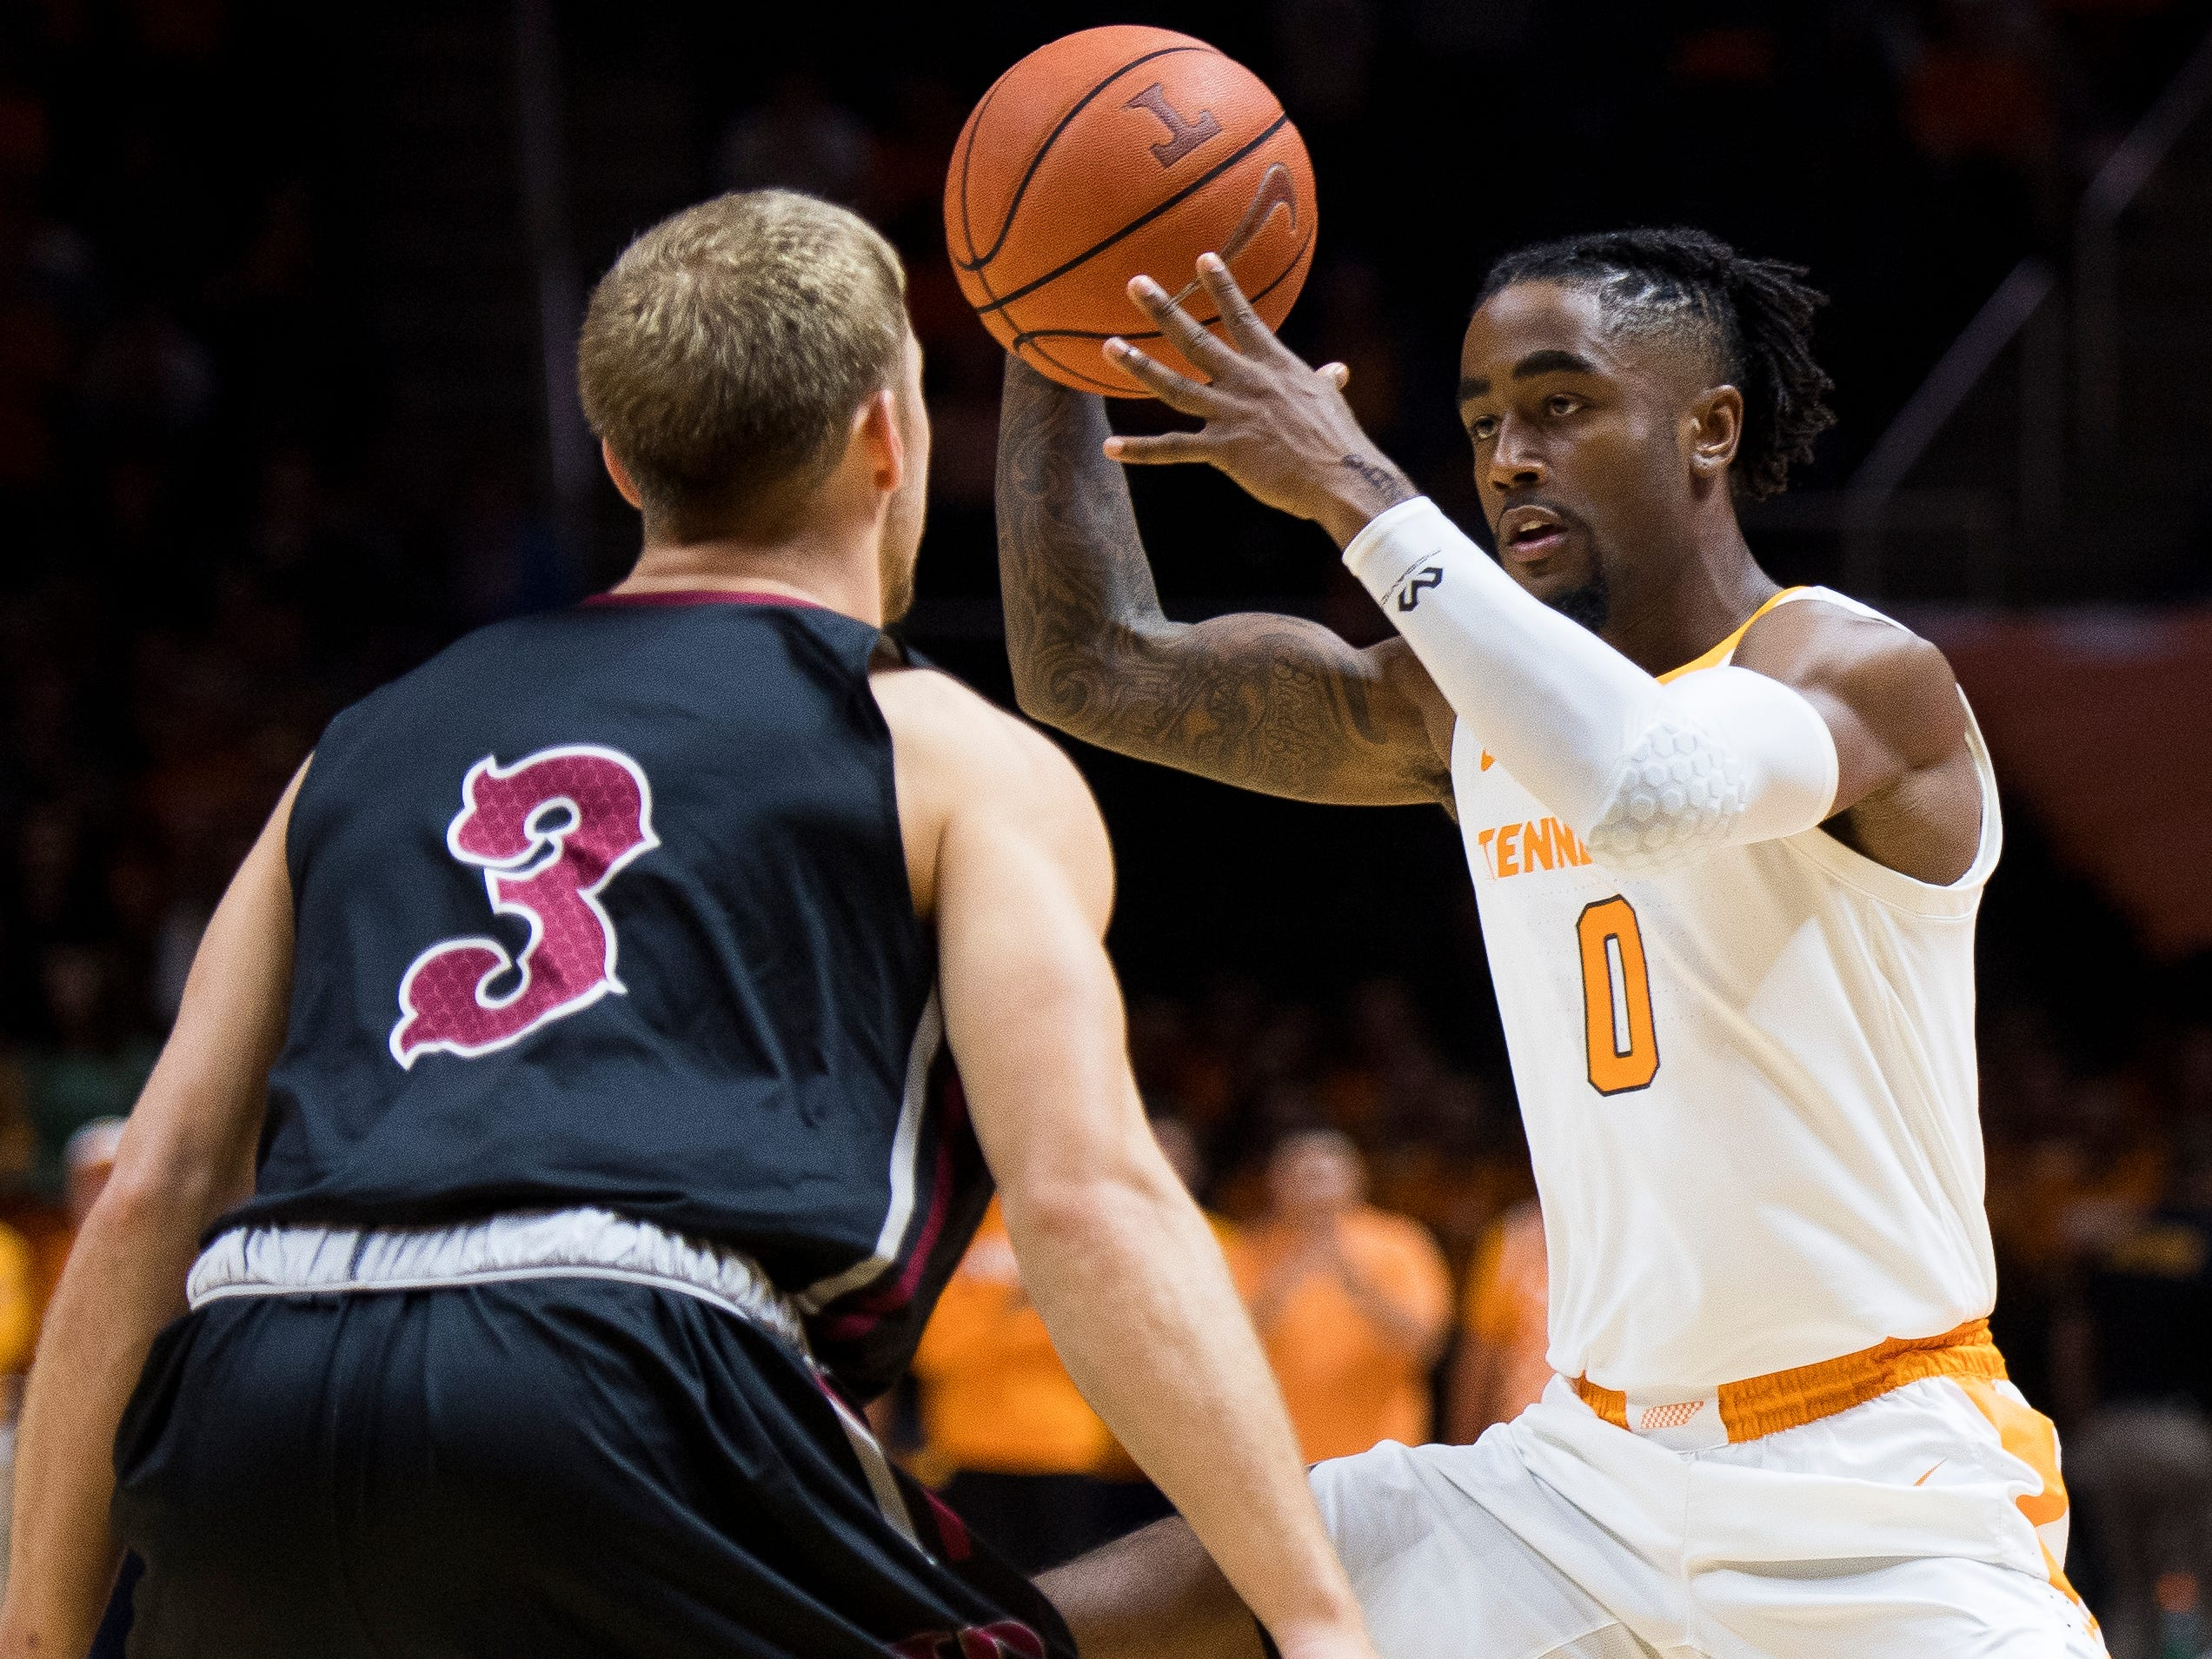 Tennessee guard Jordan Bone (0) moves past Lenoir-Rhyne guard Mason Hawks (3) during Tennessee's basketball game against Lenoir-Rhyne at Thompson-Boling Arena in Knoxville on Tuesday, November 6, 2018.